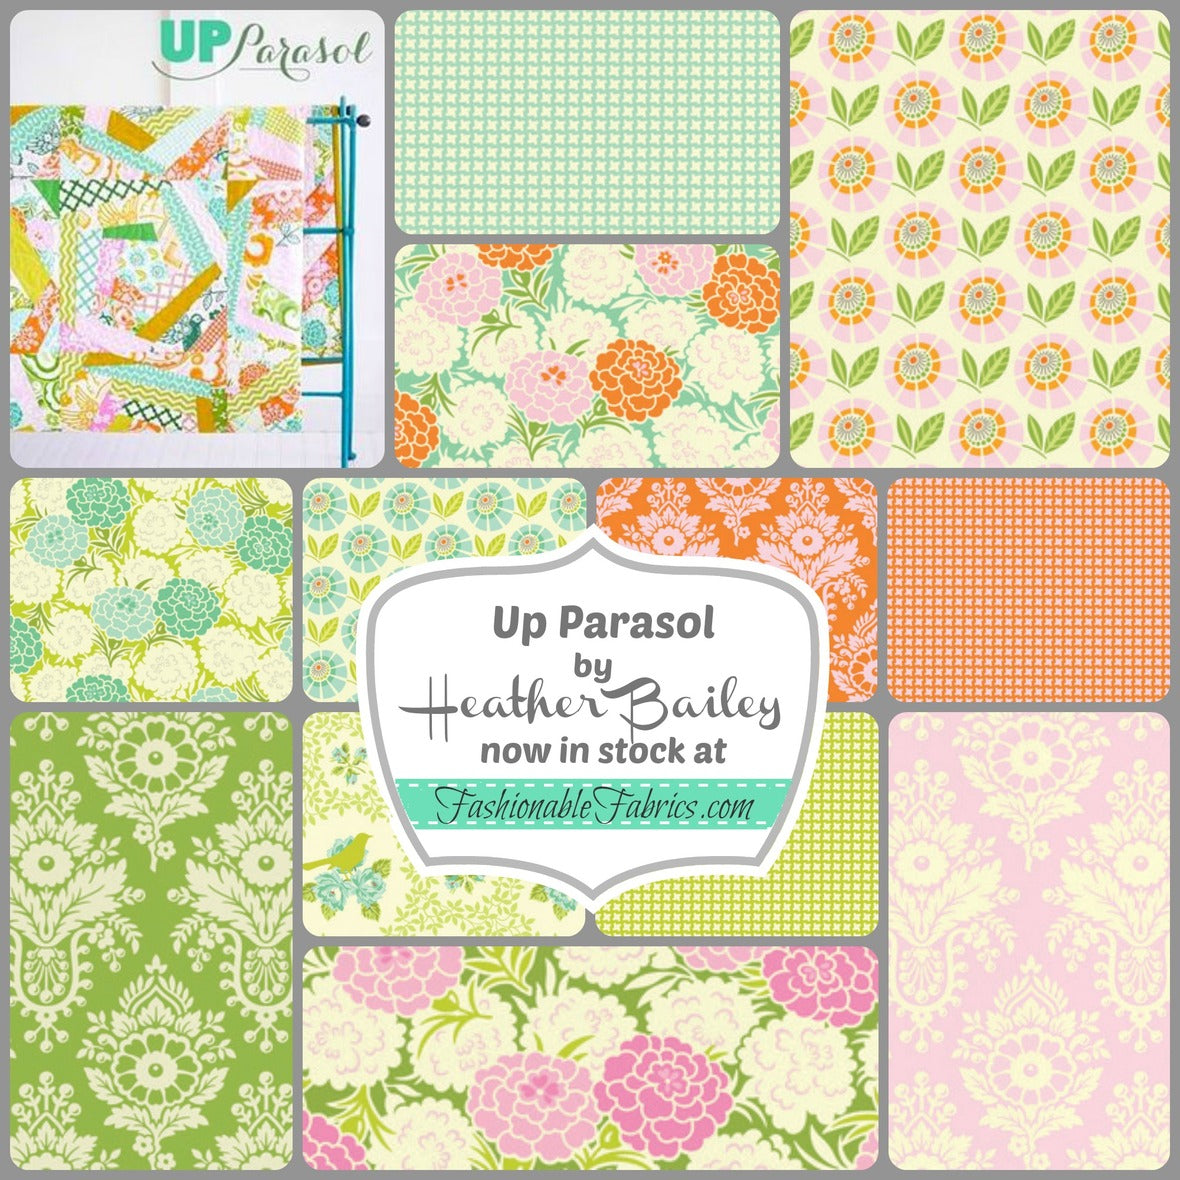 Up Parasol by Heather Bailey for FreeSpirit Fabrics